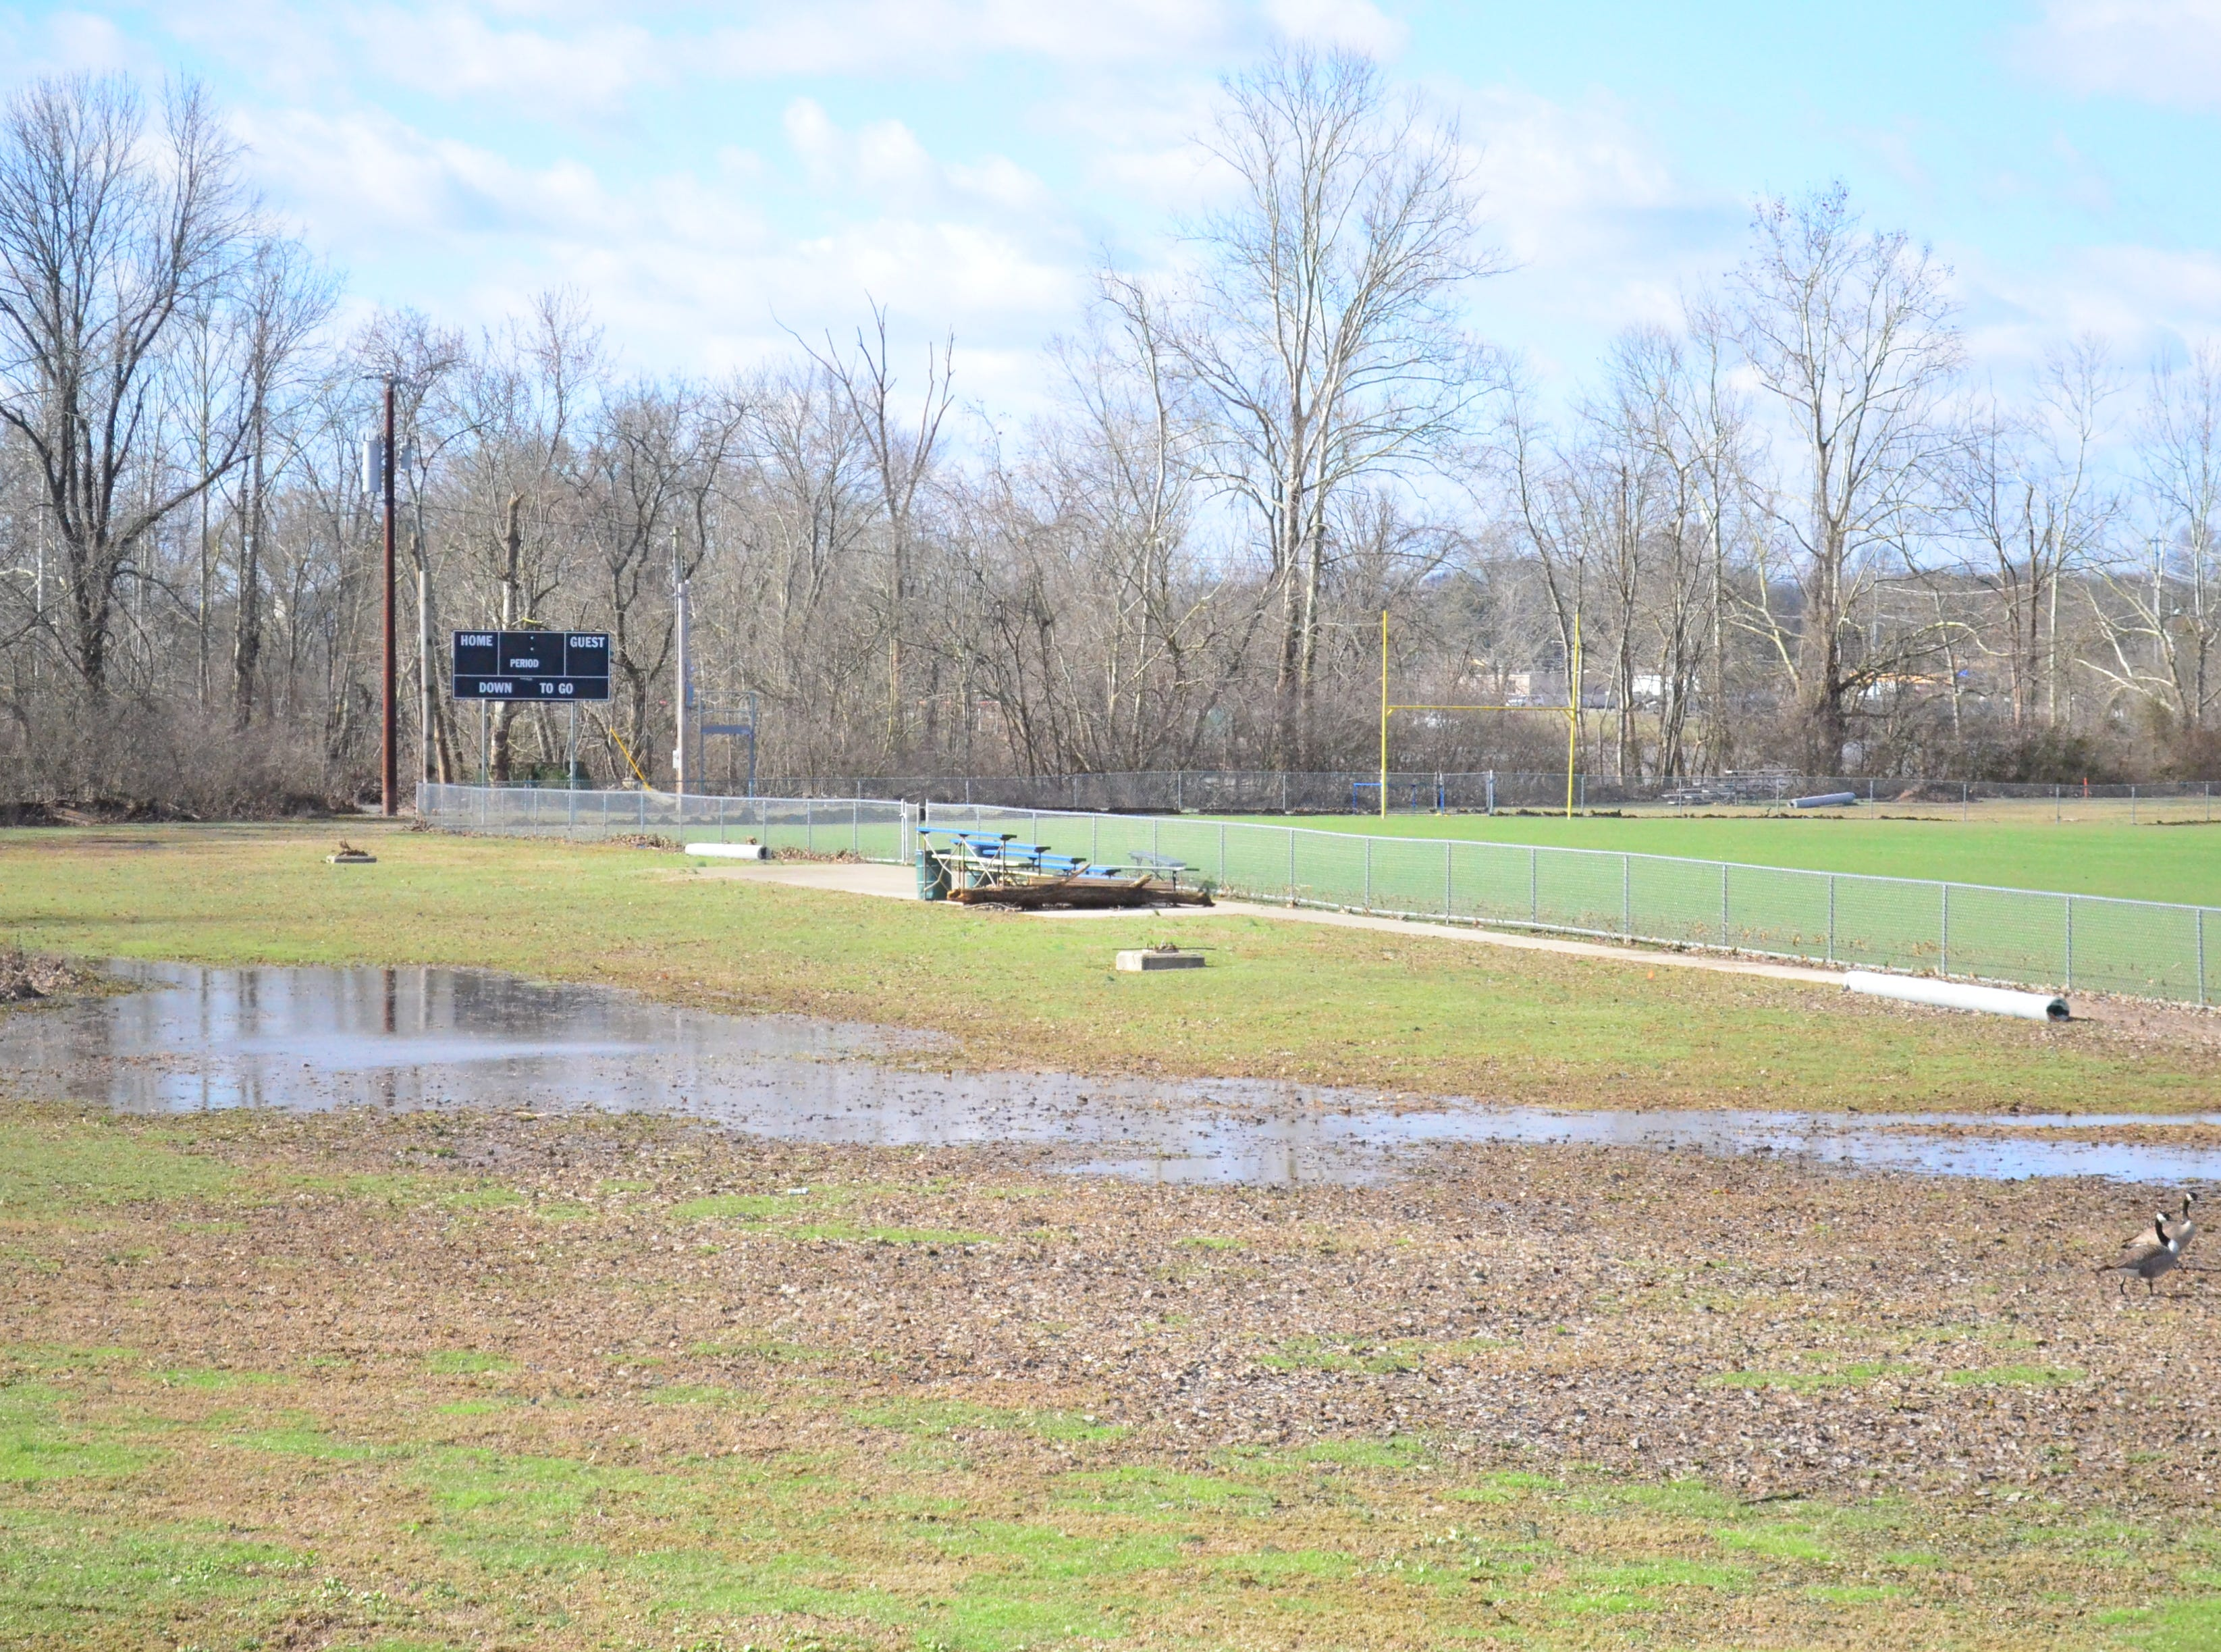 A field is flooded at Drakes Creek Park in Hendersonville Sunday, Feb. 24, 2019.